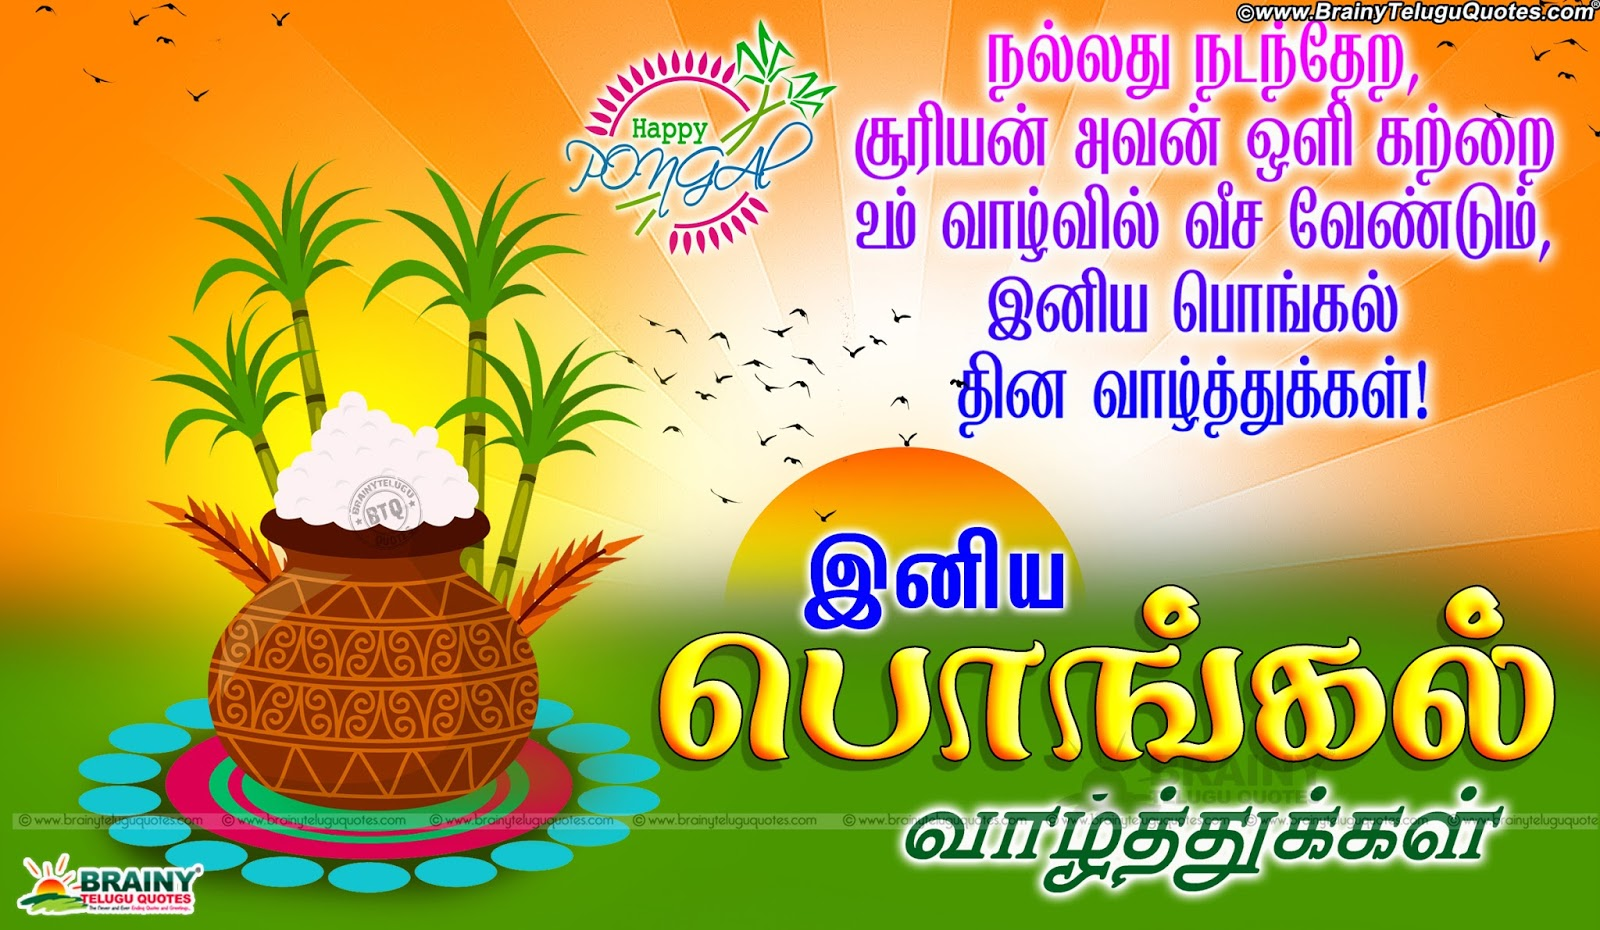 Tamil ponkal festival greetings pongal tamil greetings with hd best tamil pongal greetings online quotes pongal valthukkal in tamil tamil pongal wishes quotes kristyandbryce Images